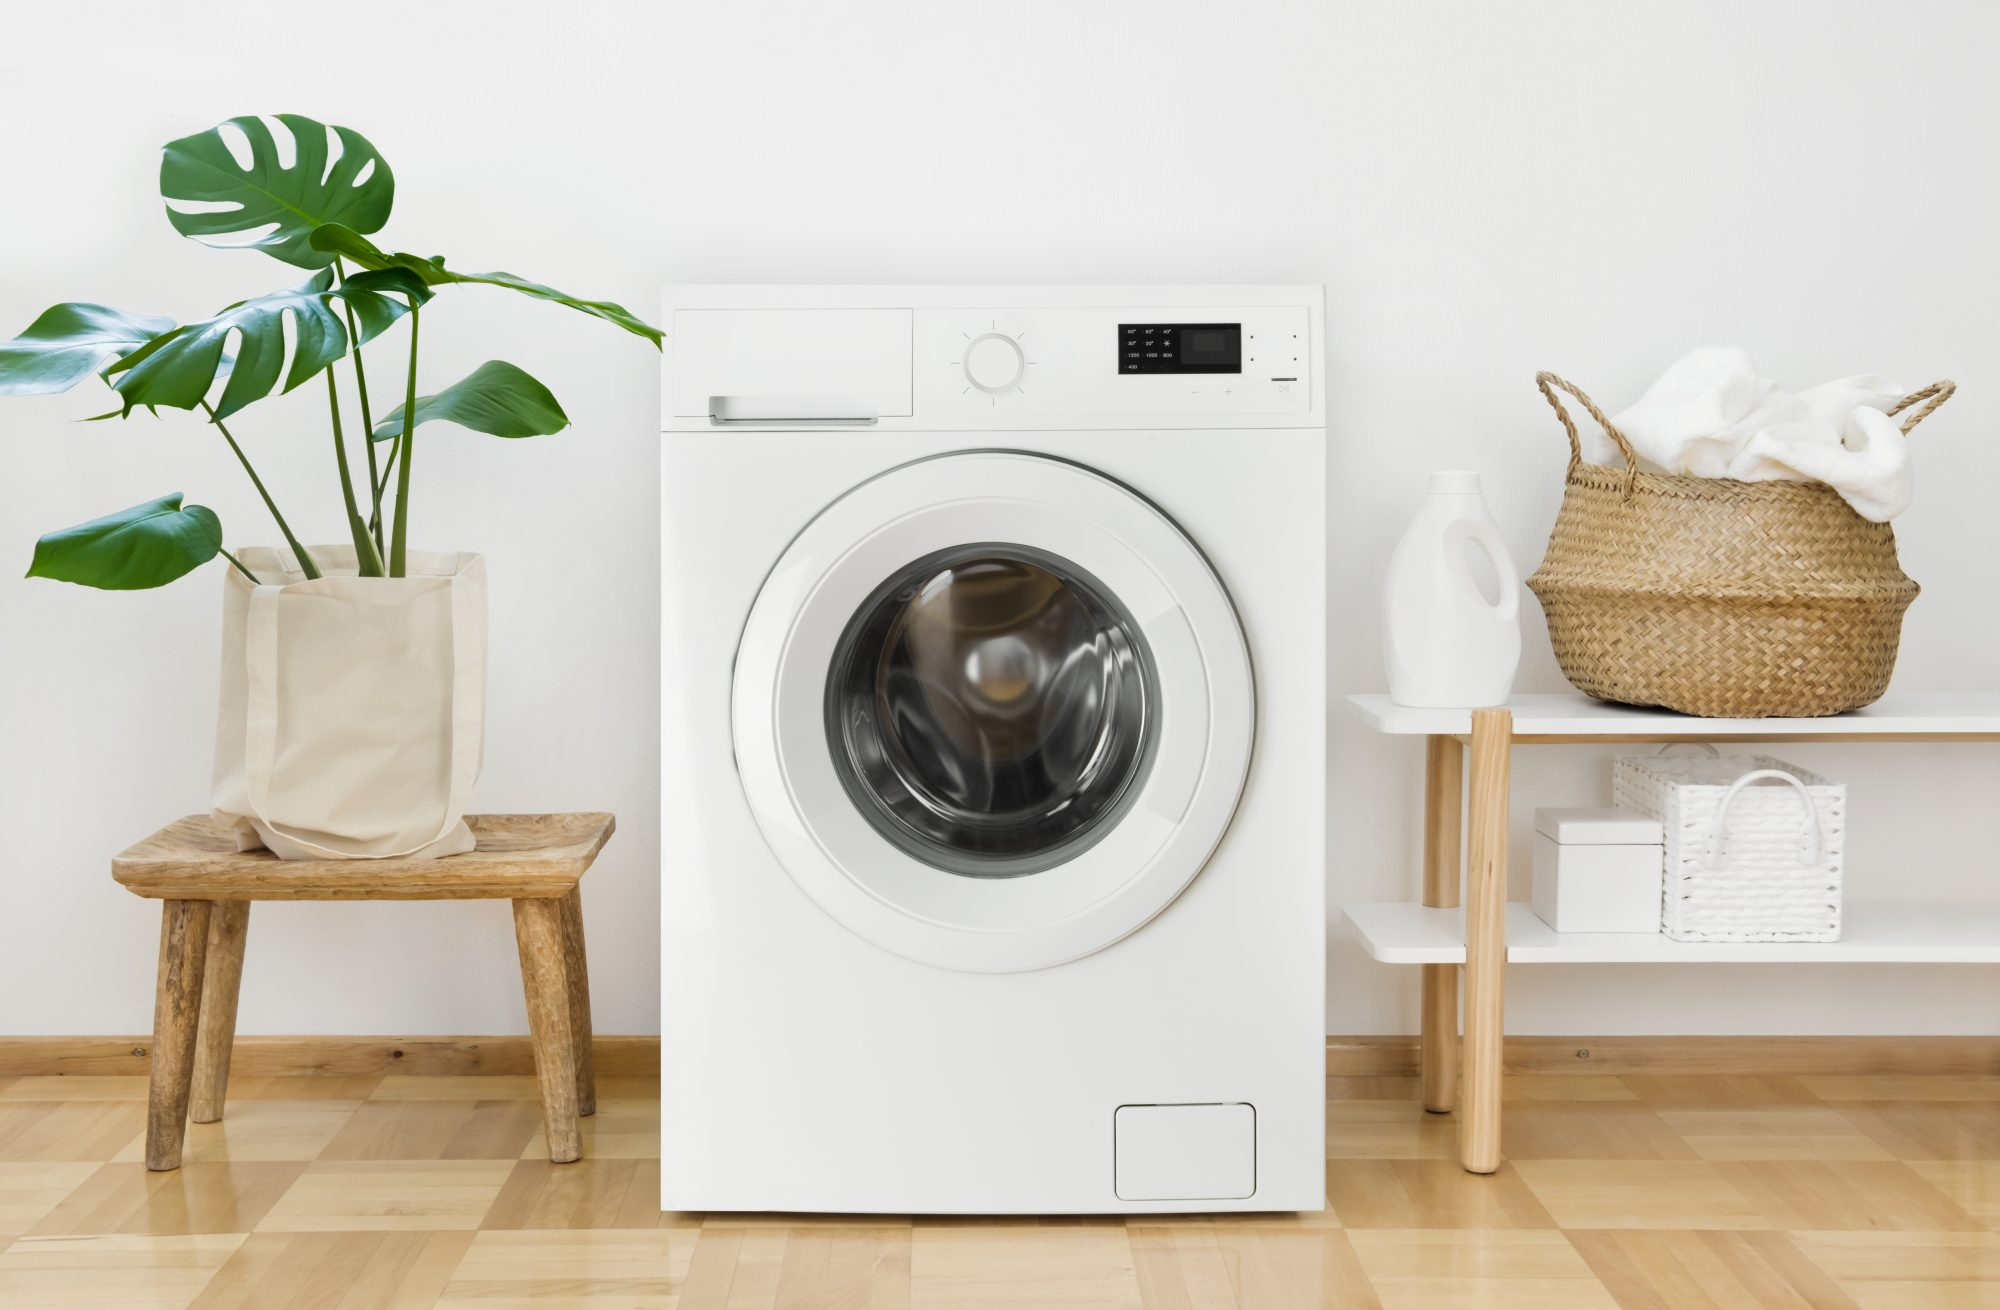 Environmentally-friendly-laundry-products